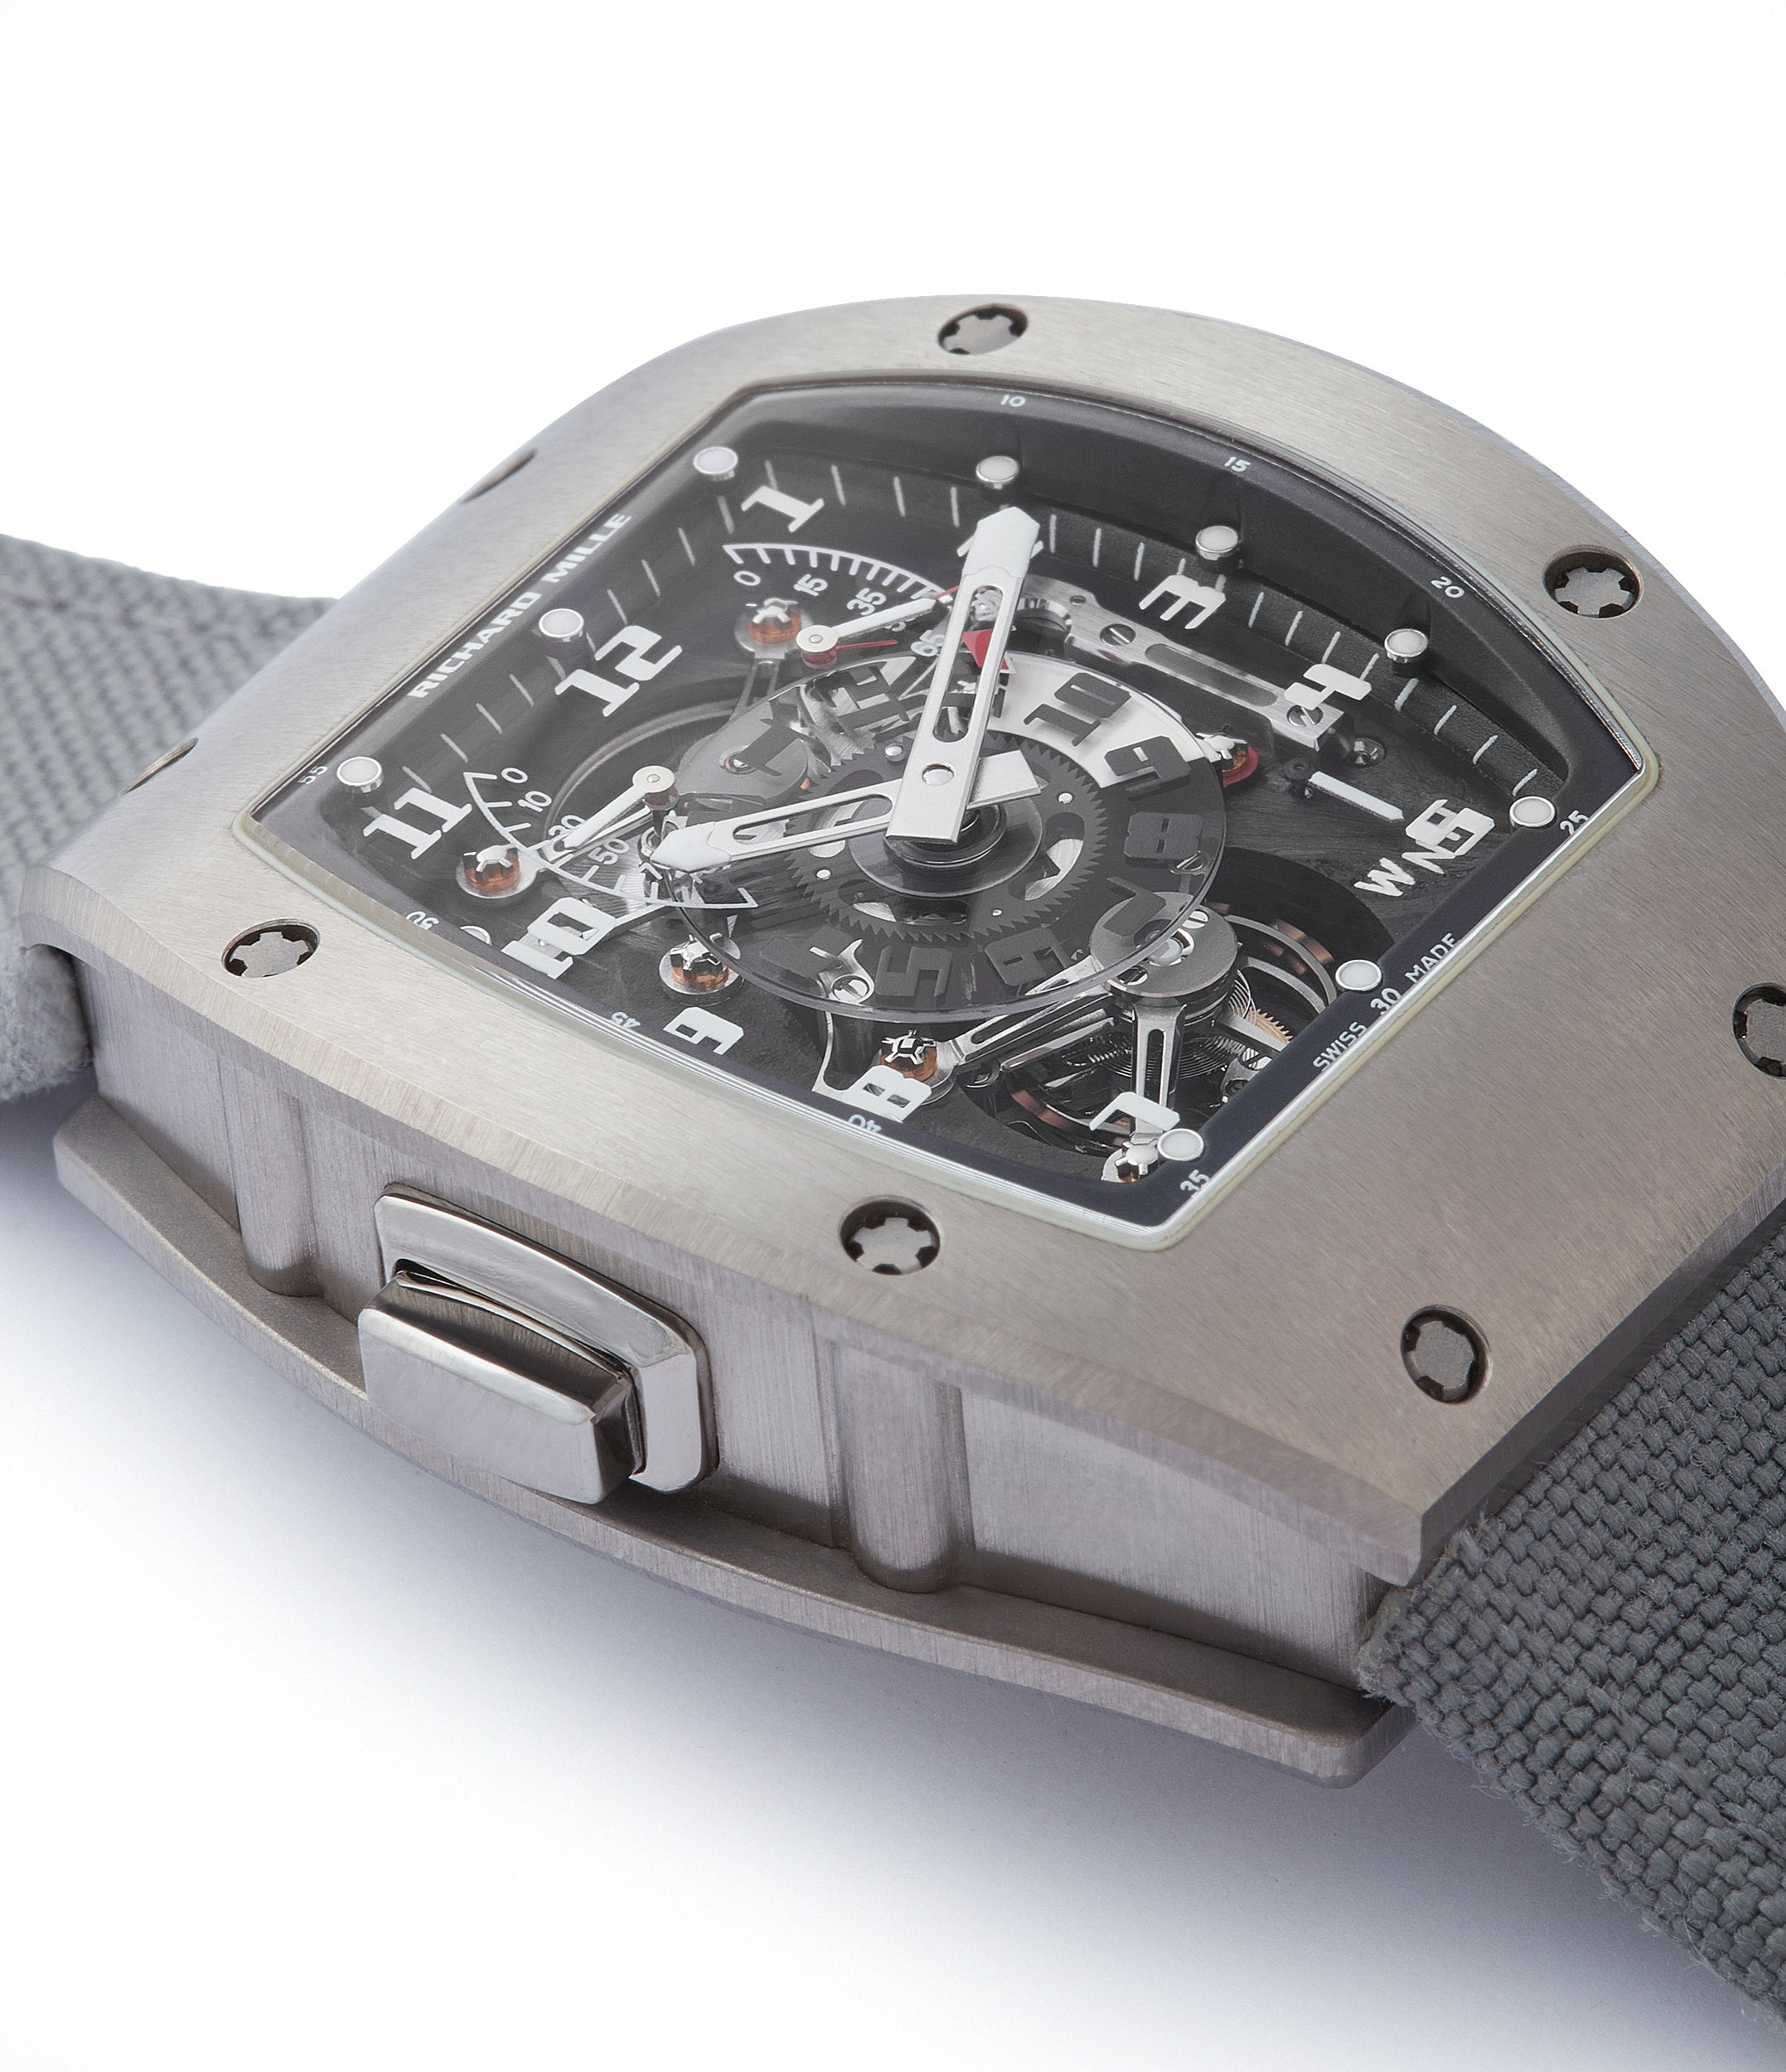 selling Richard Mille RM003-V2 titanium tourbillon dual-time pre-owned rare independent watchmaker sports traveller watch for sale online at A Collected Man London UK specialist of rare watches